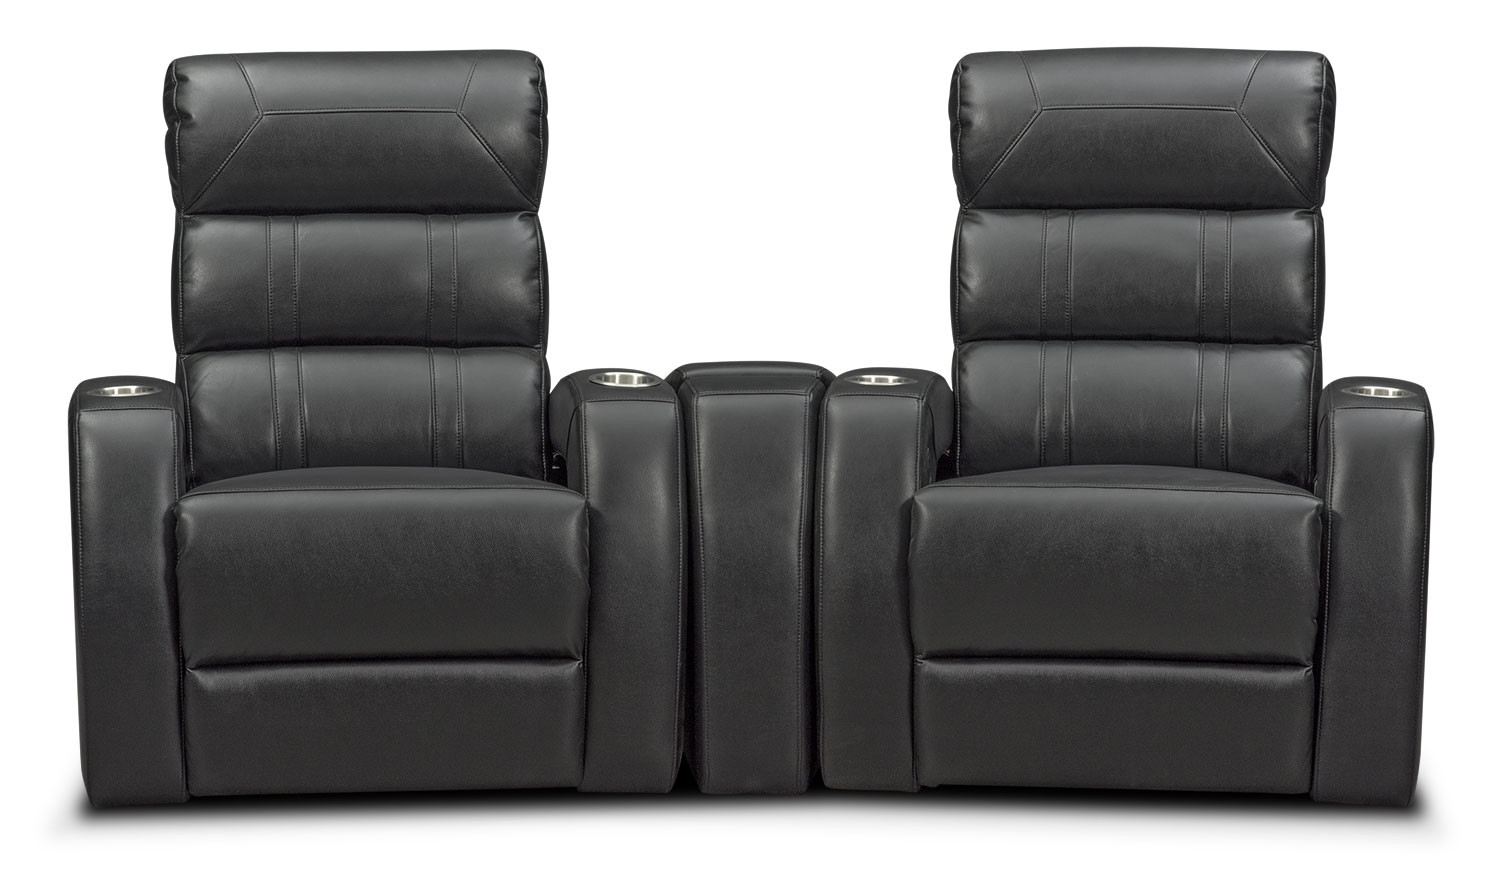 Bravo 3-Piece Power Reclining Home Theater Sectional - Black